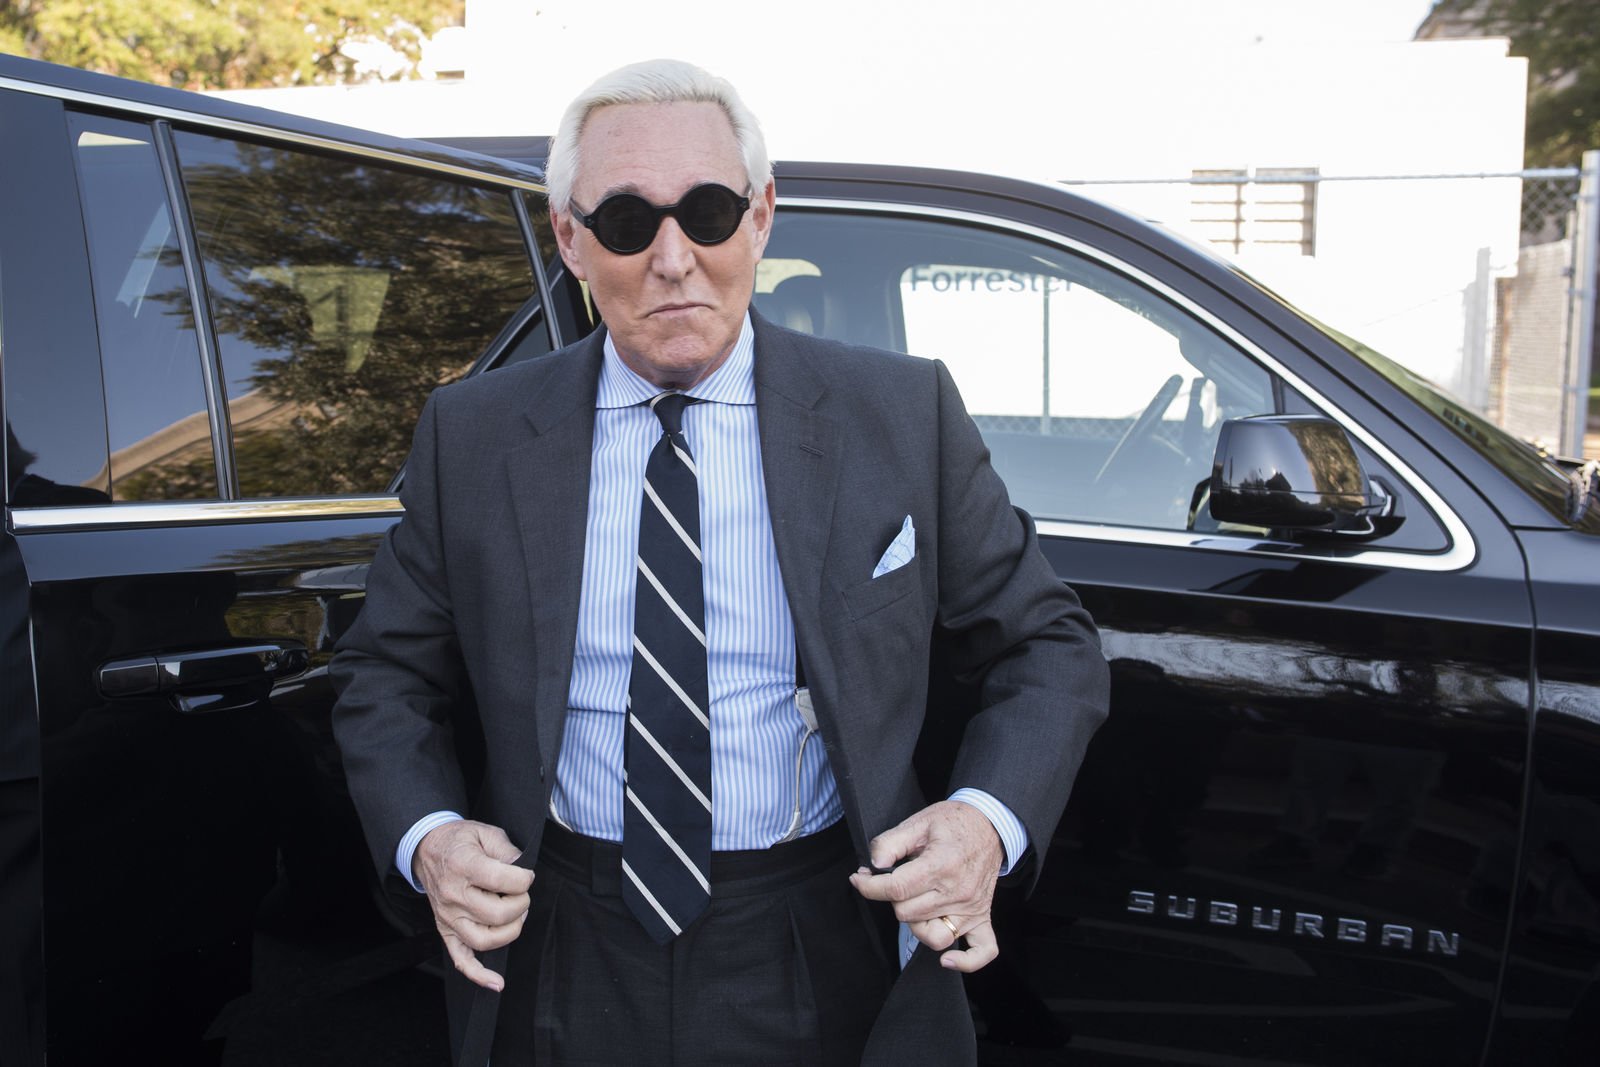 FILE - In this Nov. 6, 2019 file photo, Roger Stone arrives at Federal Court for the second day of jury selection for his federal trial, in Washington.{ } (AP Photo/Cliff Owen)